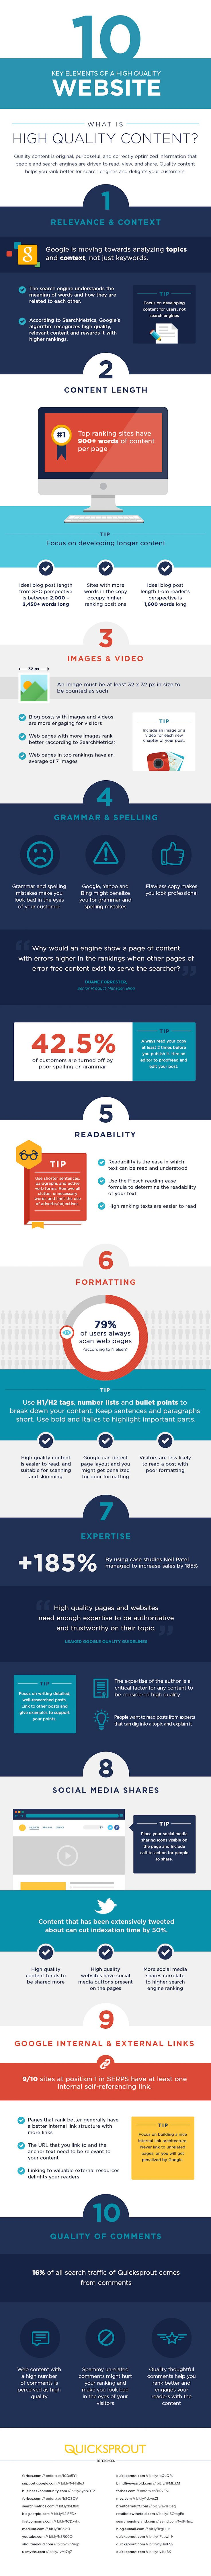 The 10 Key Elements of a High Quality Website #infographic #Website #Business